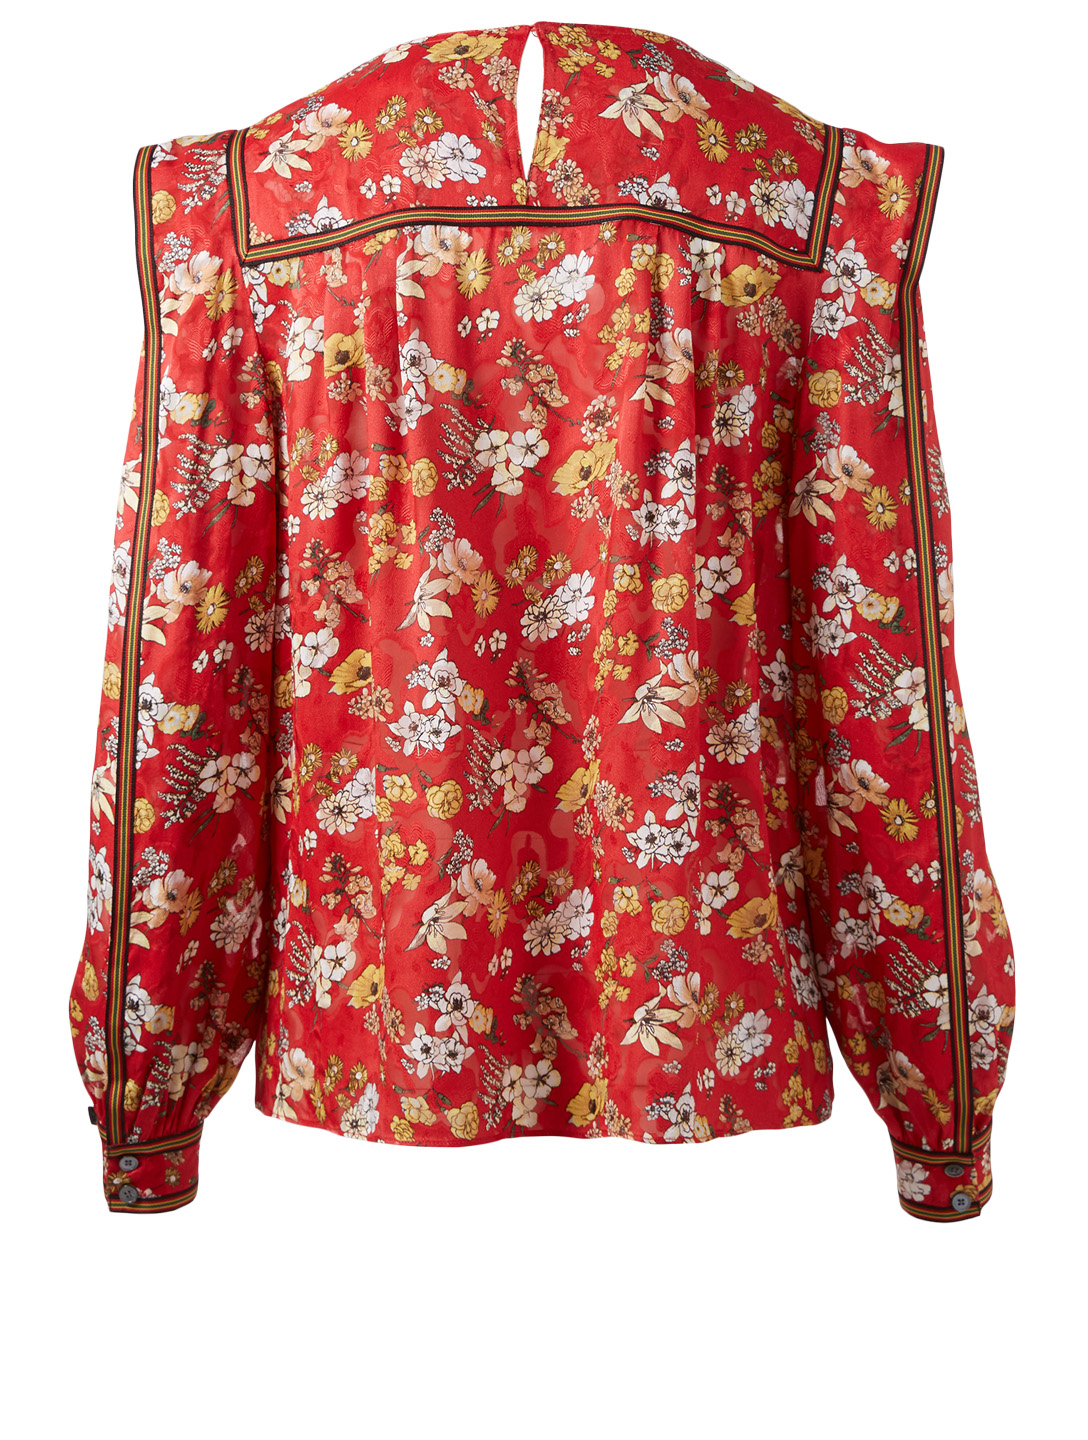 DEREK LAM 10 CROSBY Silk-Blend Blouse In Floral Print Women's Red